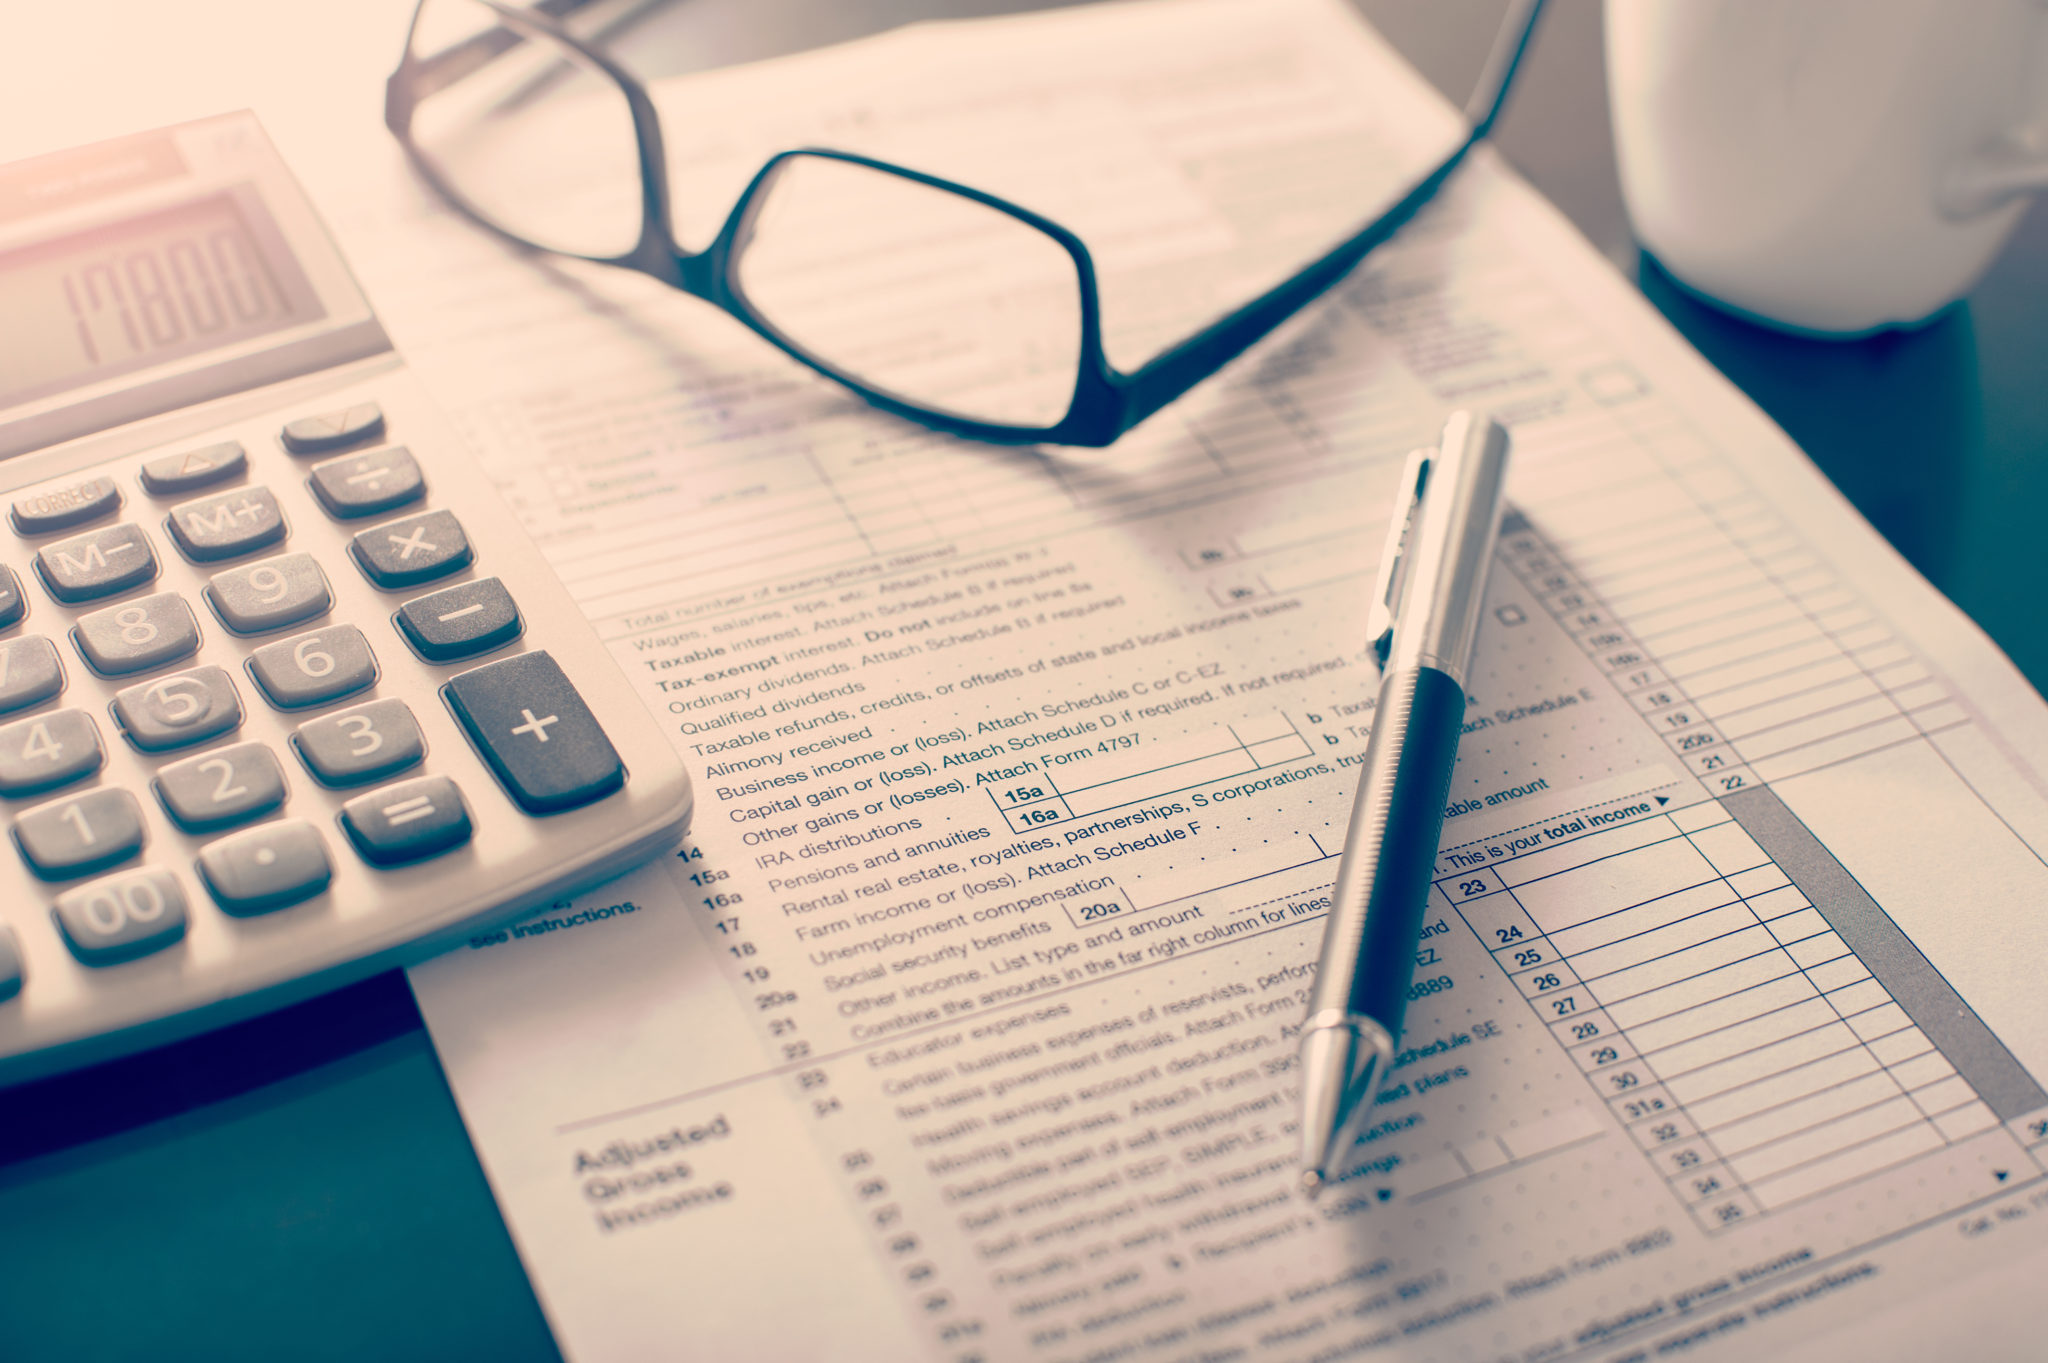 9 FINAL TAX REVIEW MISTAKES THAT COULD COST YOU